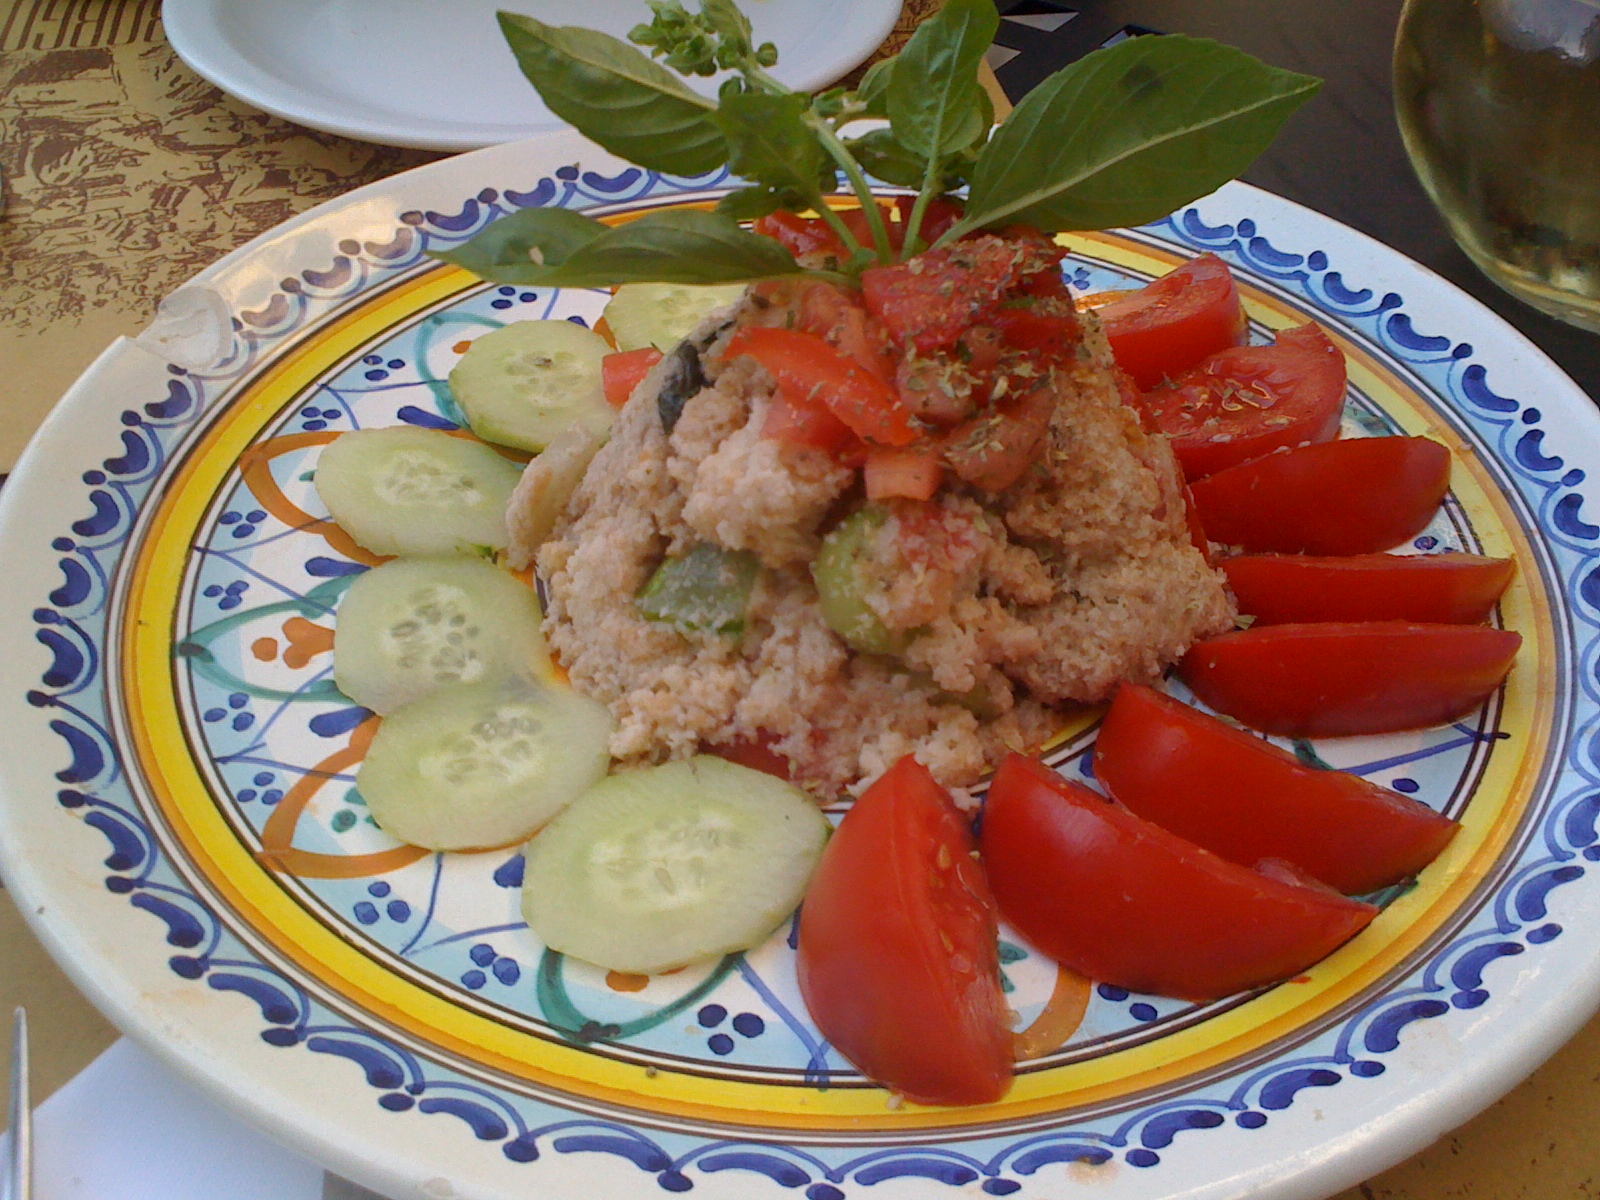 Tuscan Bread and Tomato Salad With Parmesan Cheese